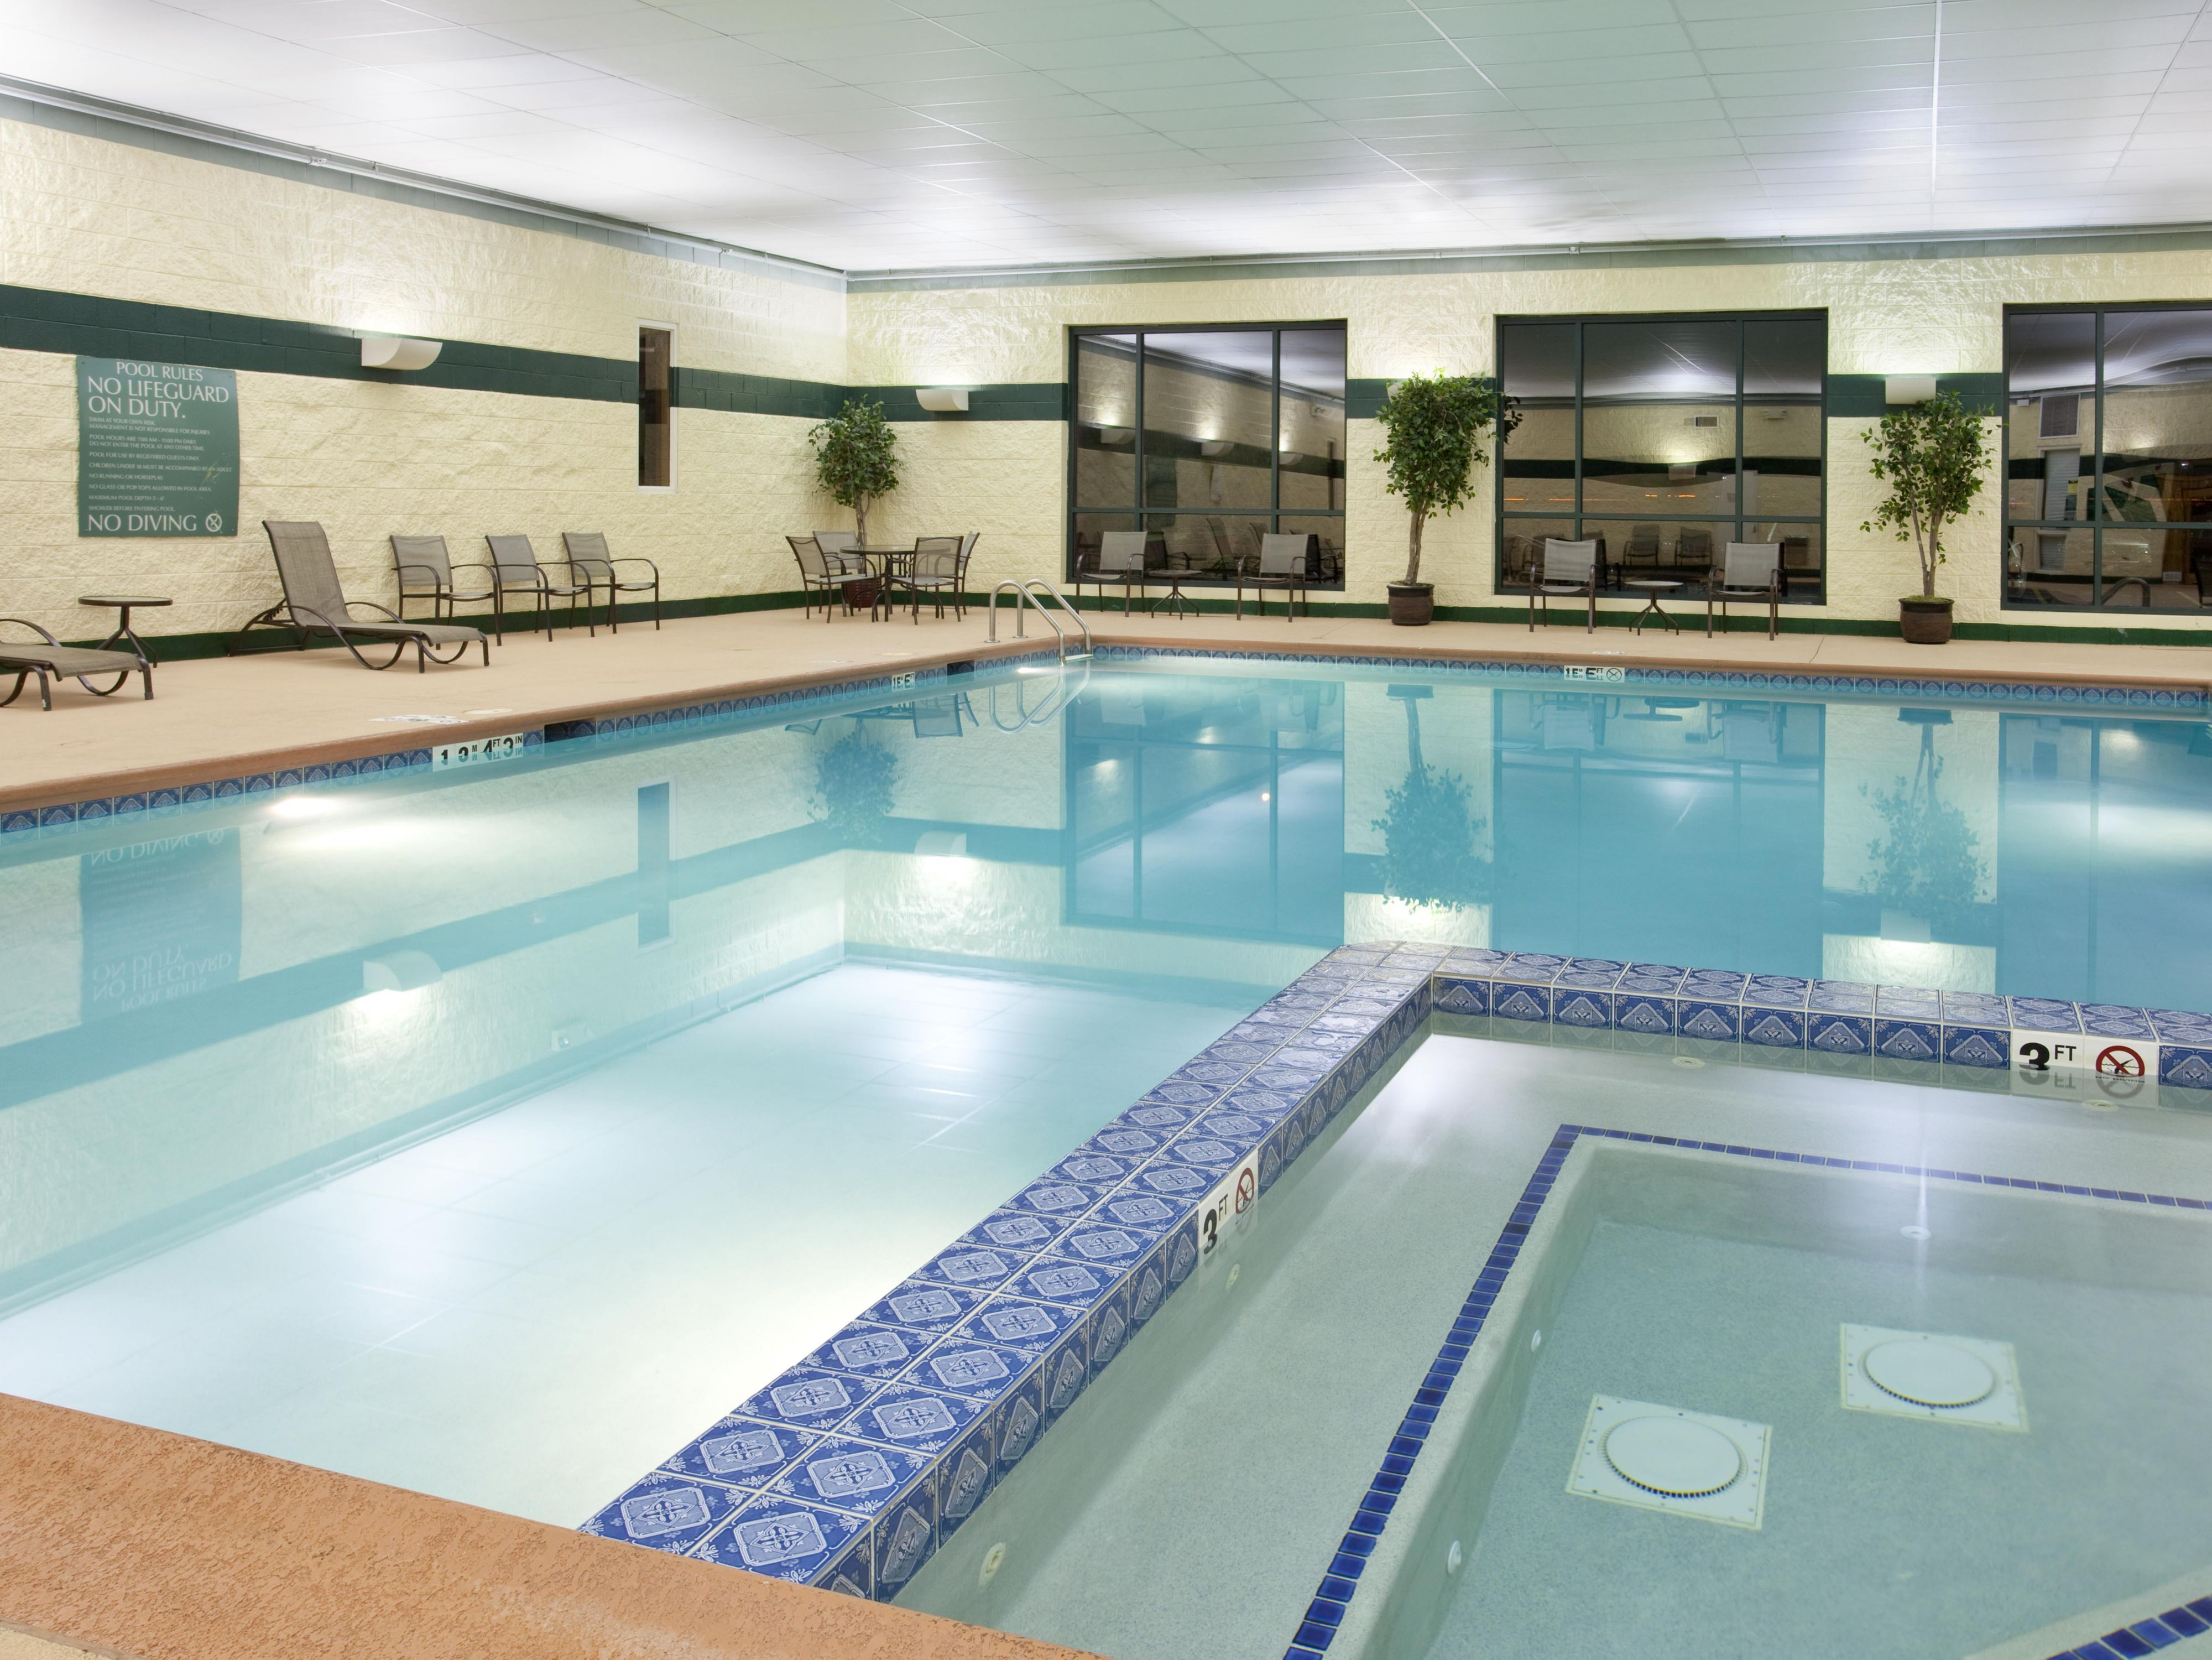 The Bolingbrook area's largest indoor hotel pool